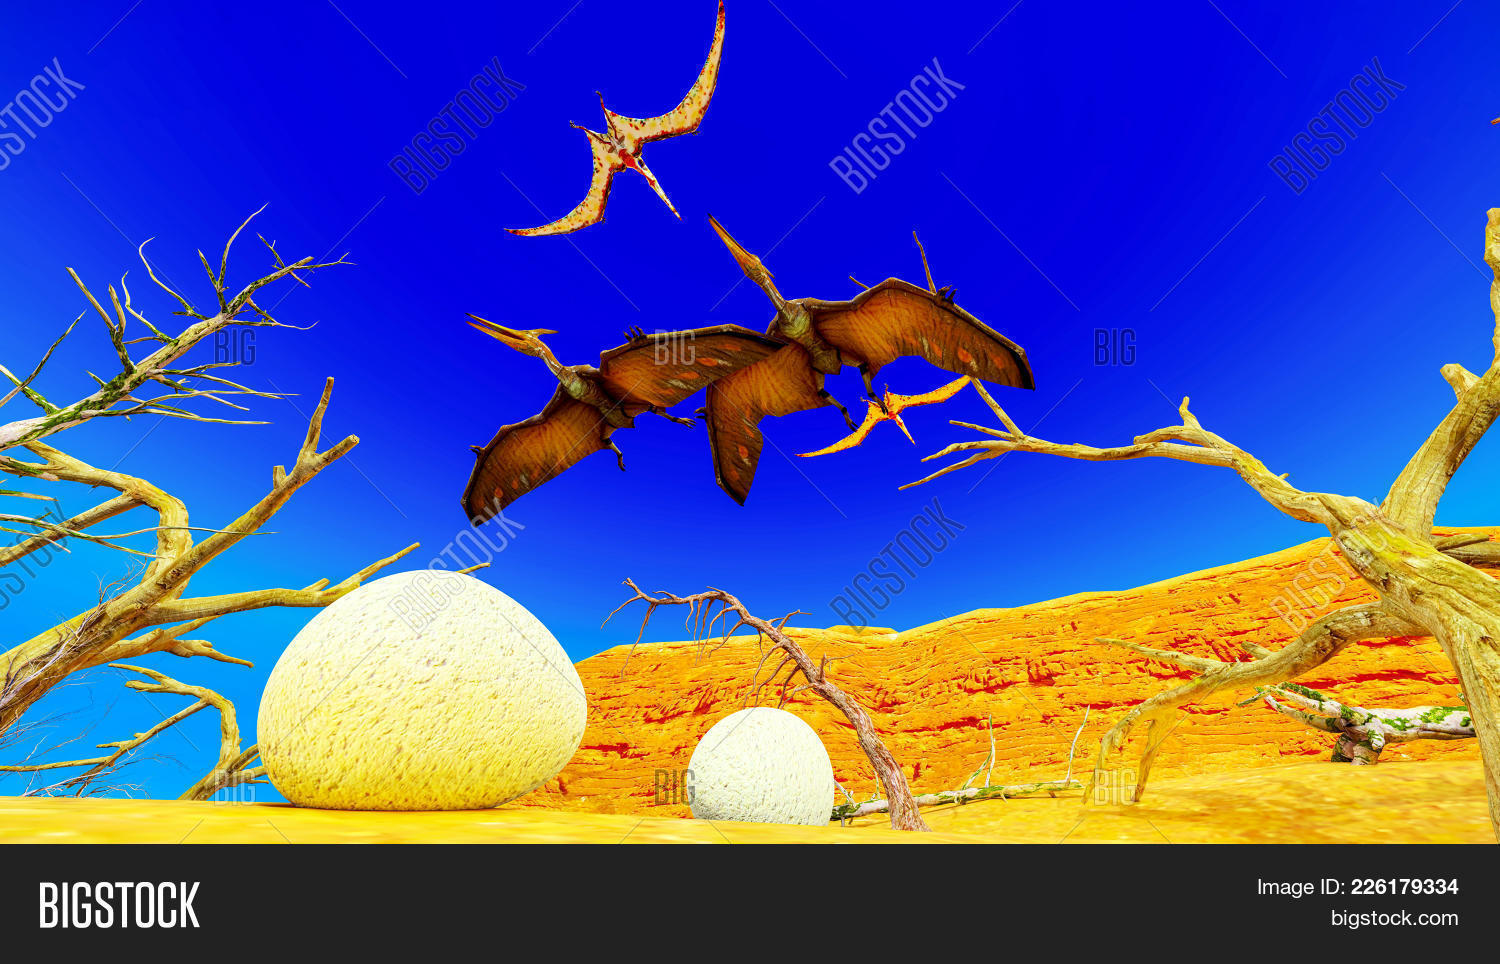 egg and pterodactyl powerpoint background powerpoint template egg